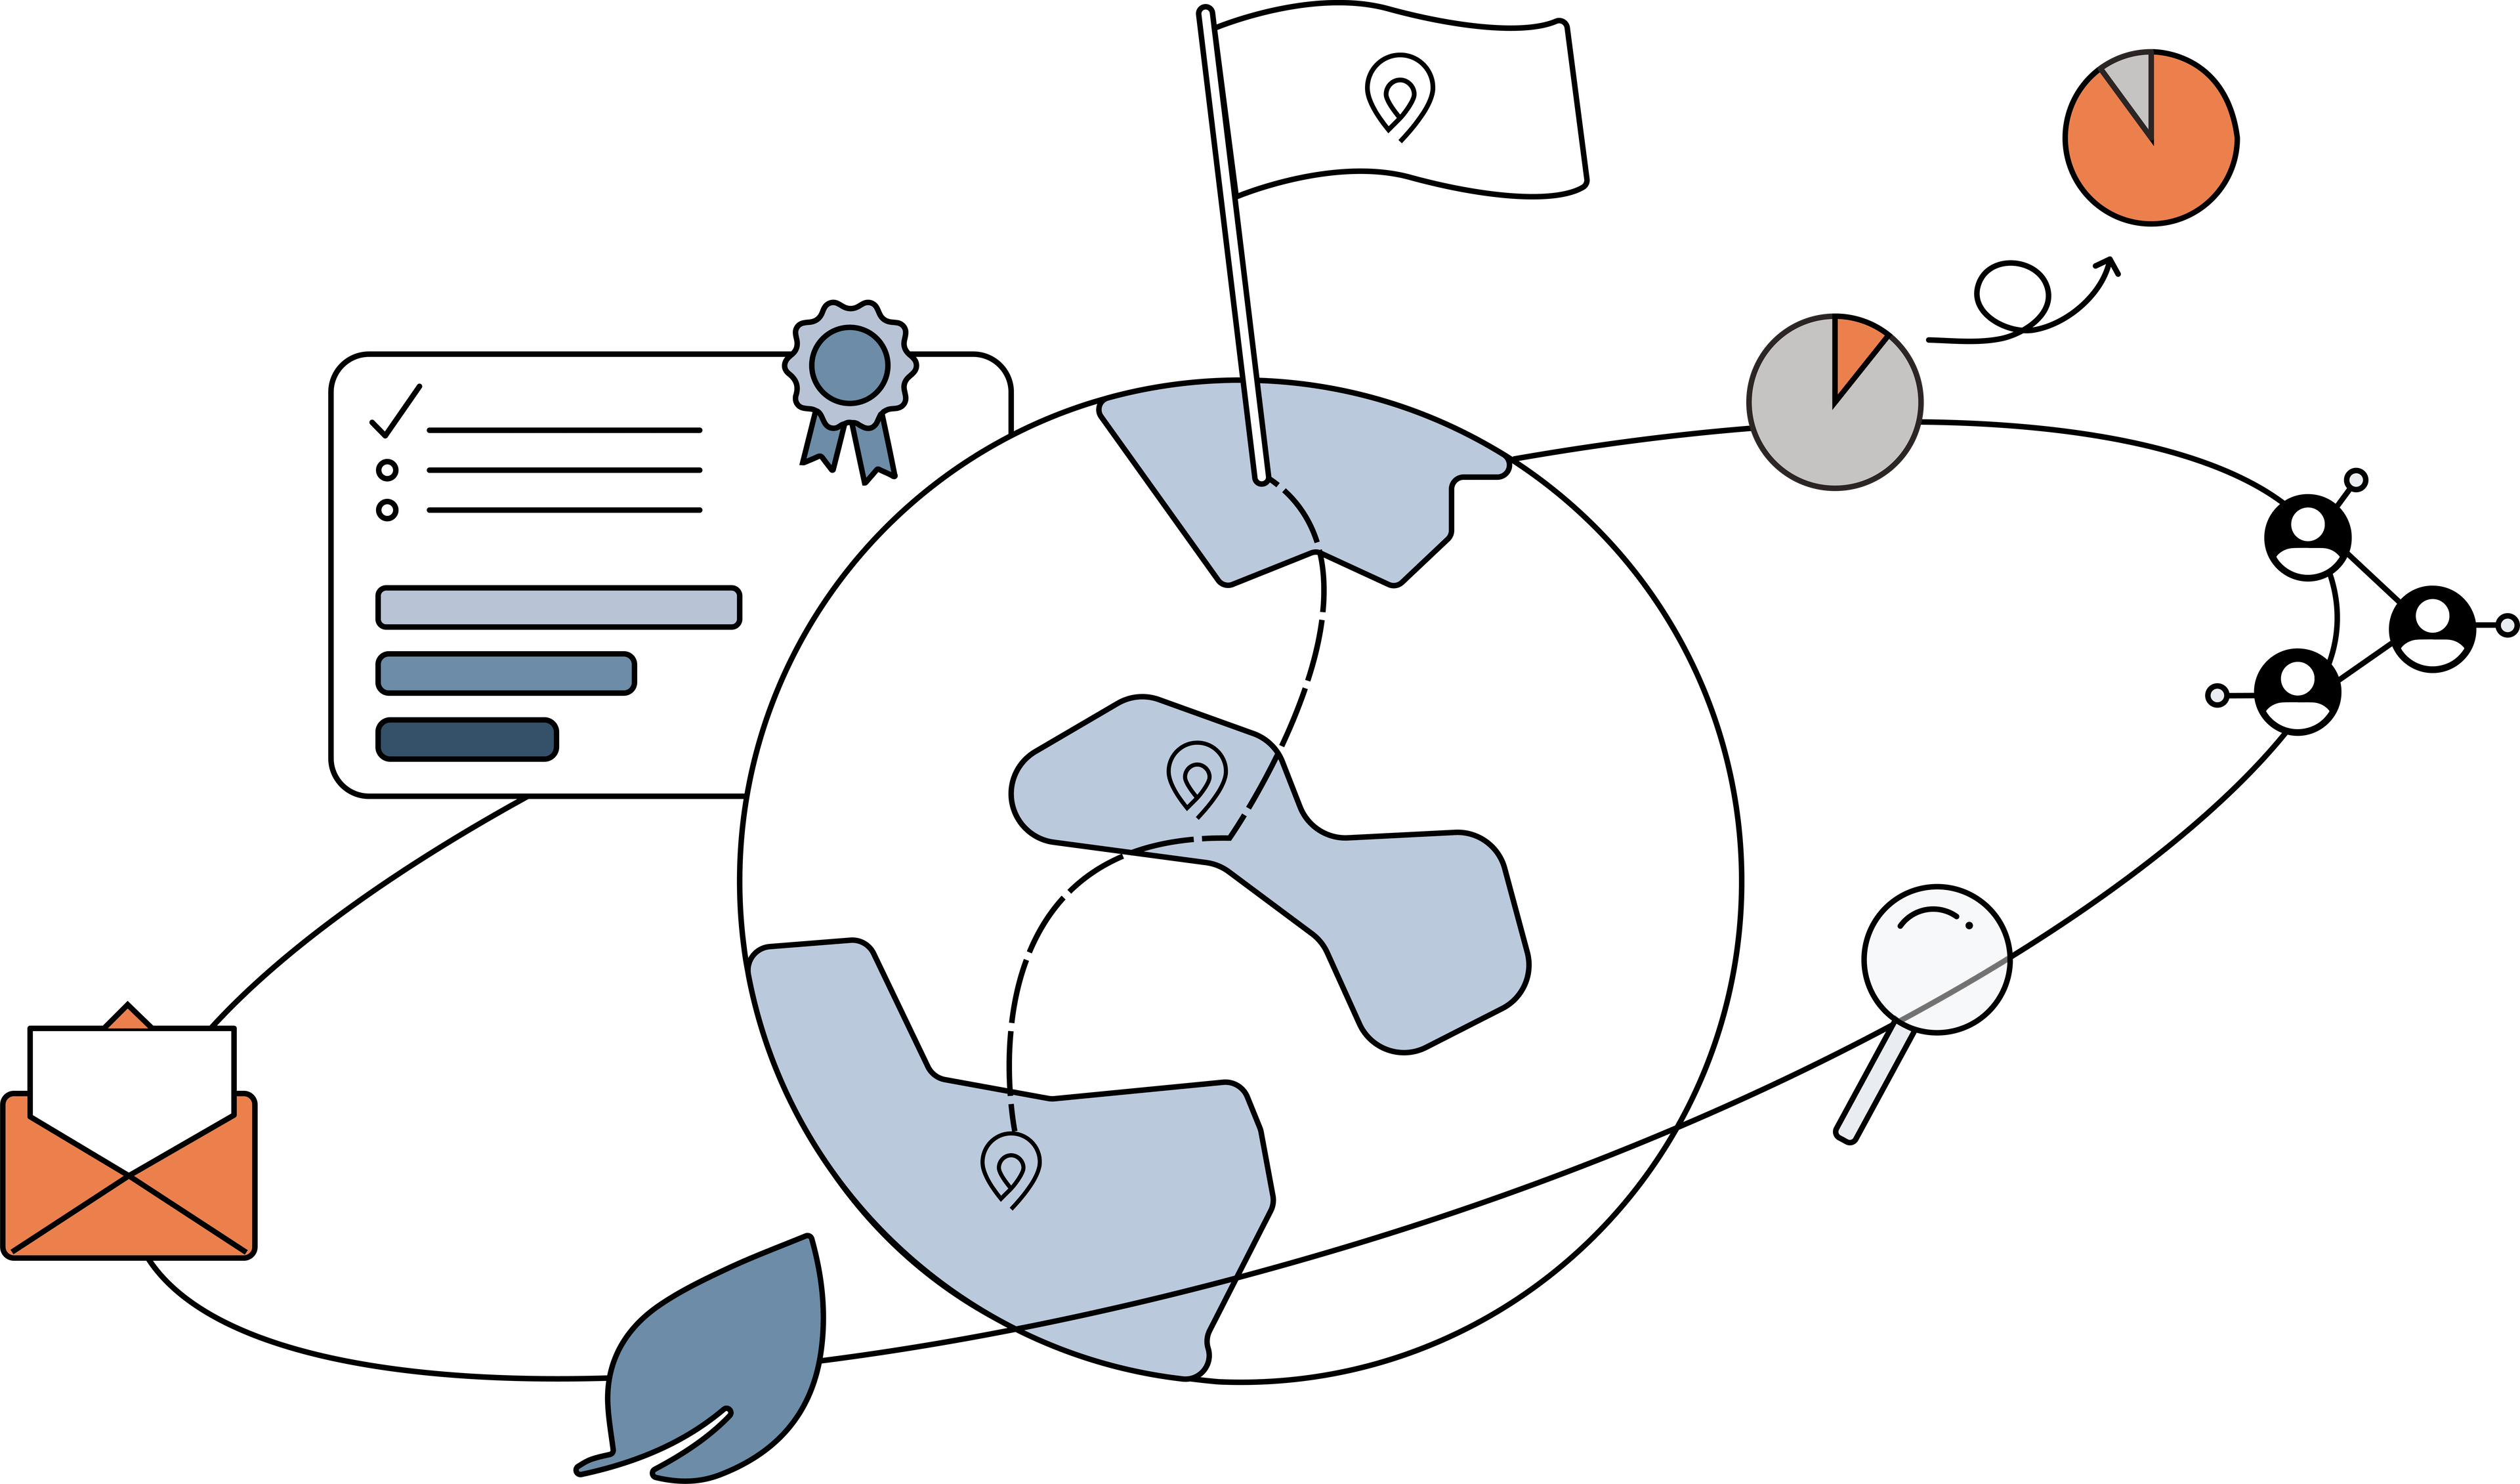 drawing of the globe with various icons and analyses and graphs orbiting the planet. On the globe is a path traced by dotted lines and features a flag with the retraced logo